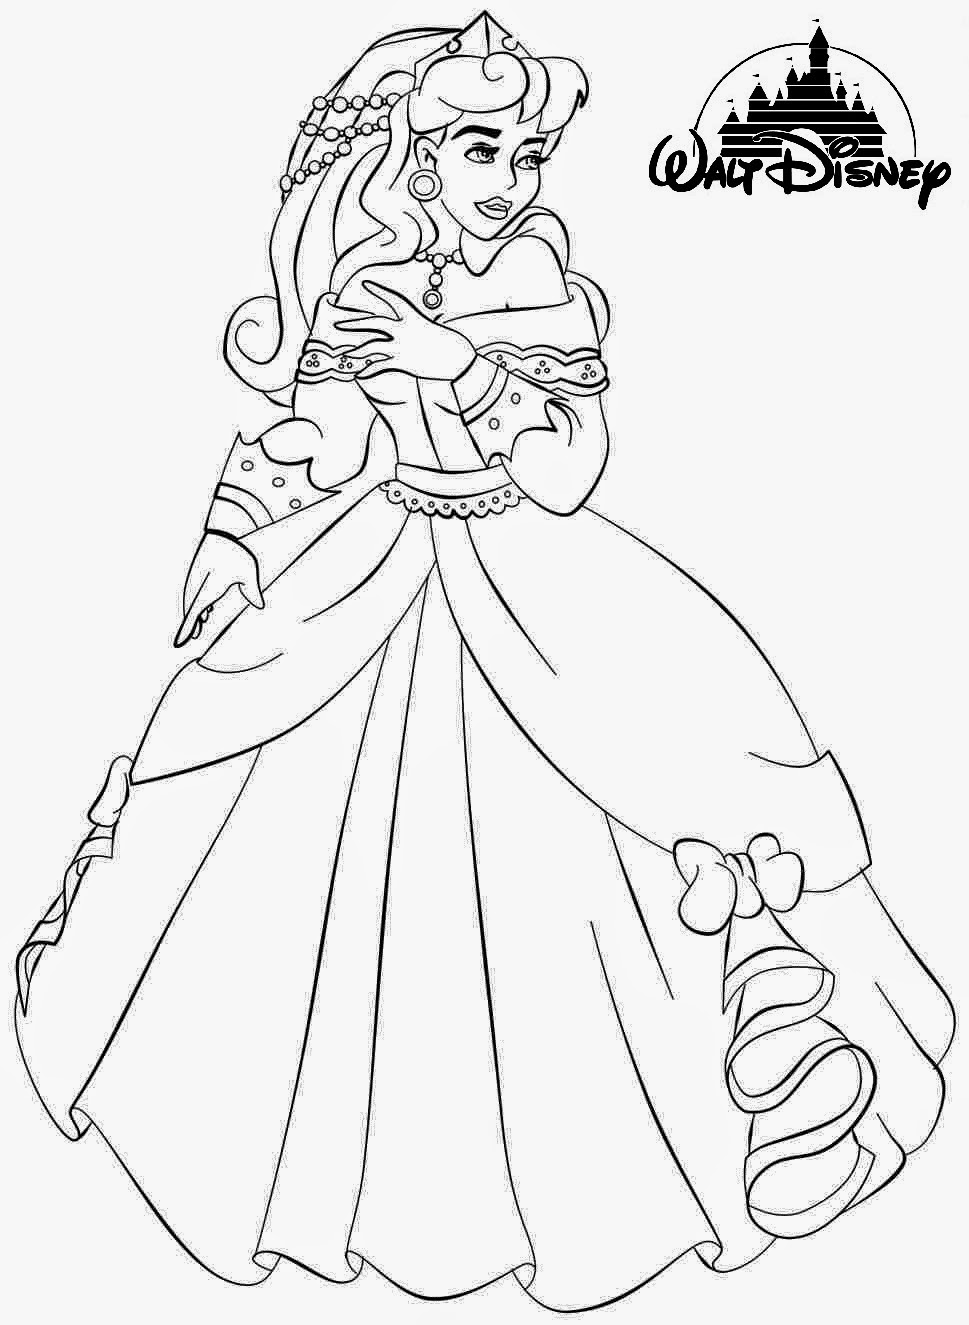 Princess Aurora - Free Colouring Pages | free printable princess aurora coloring pages